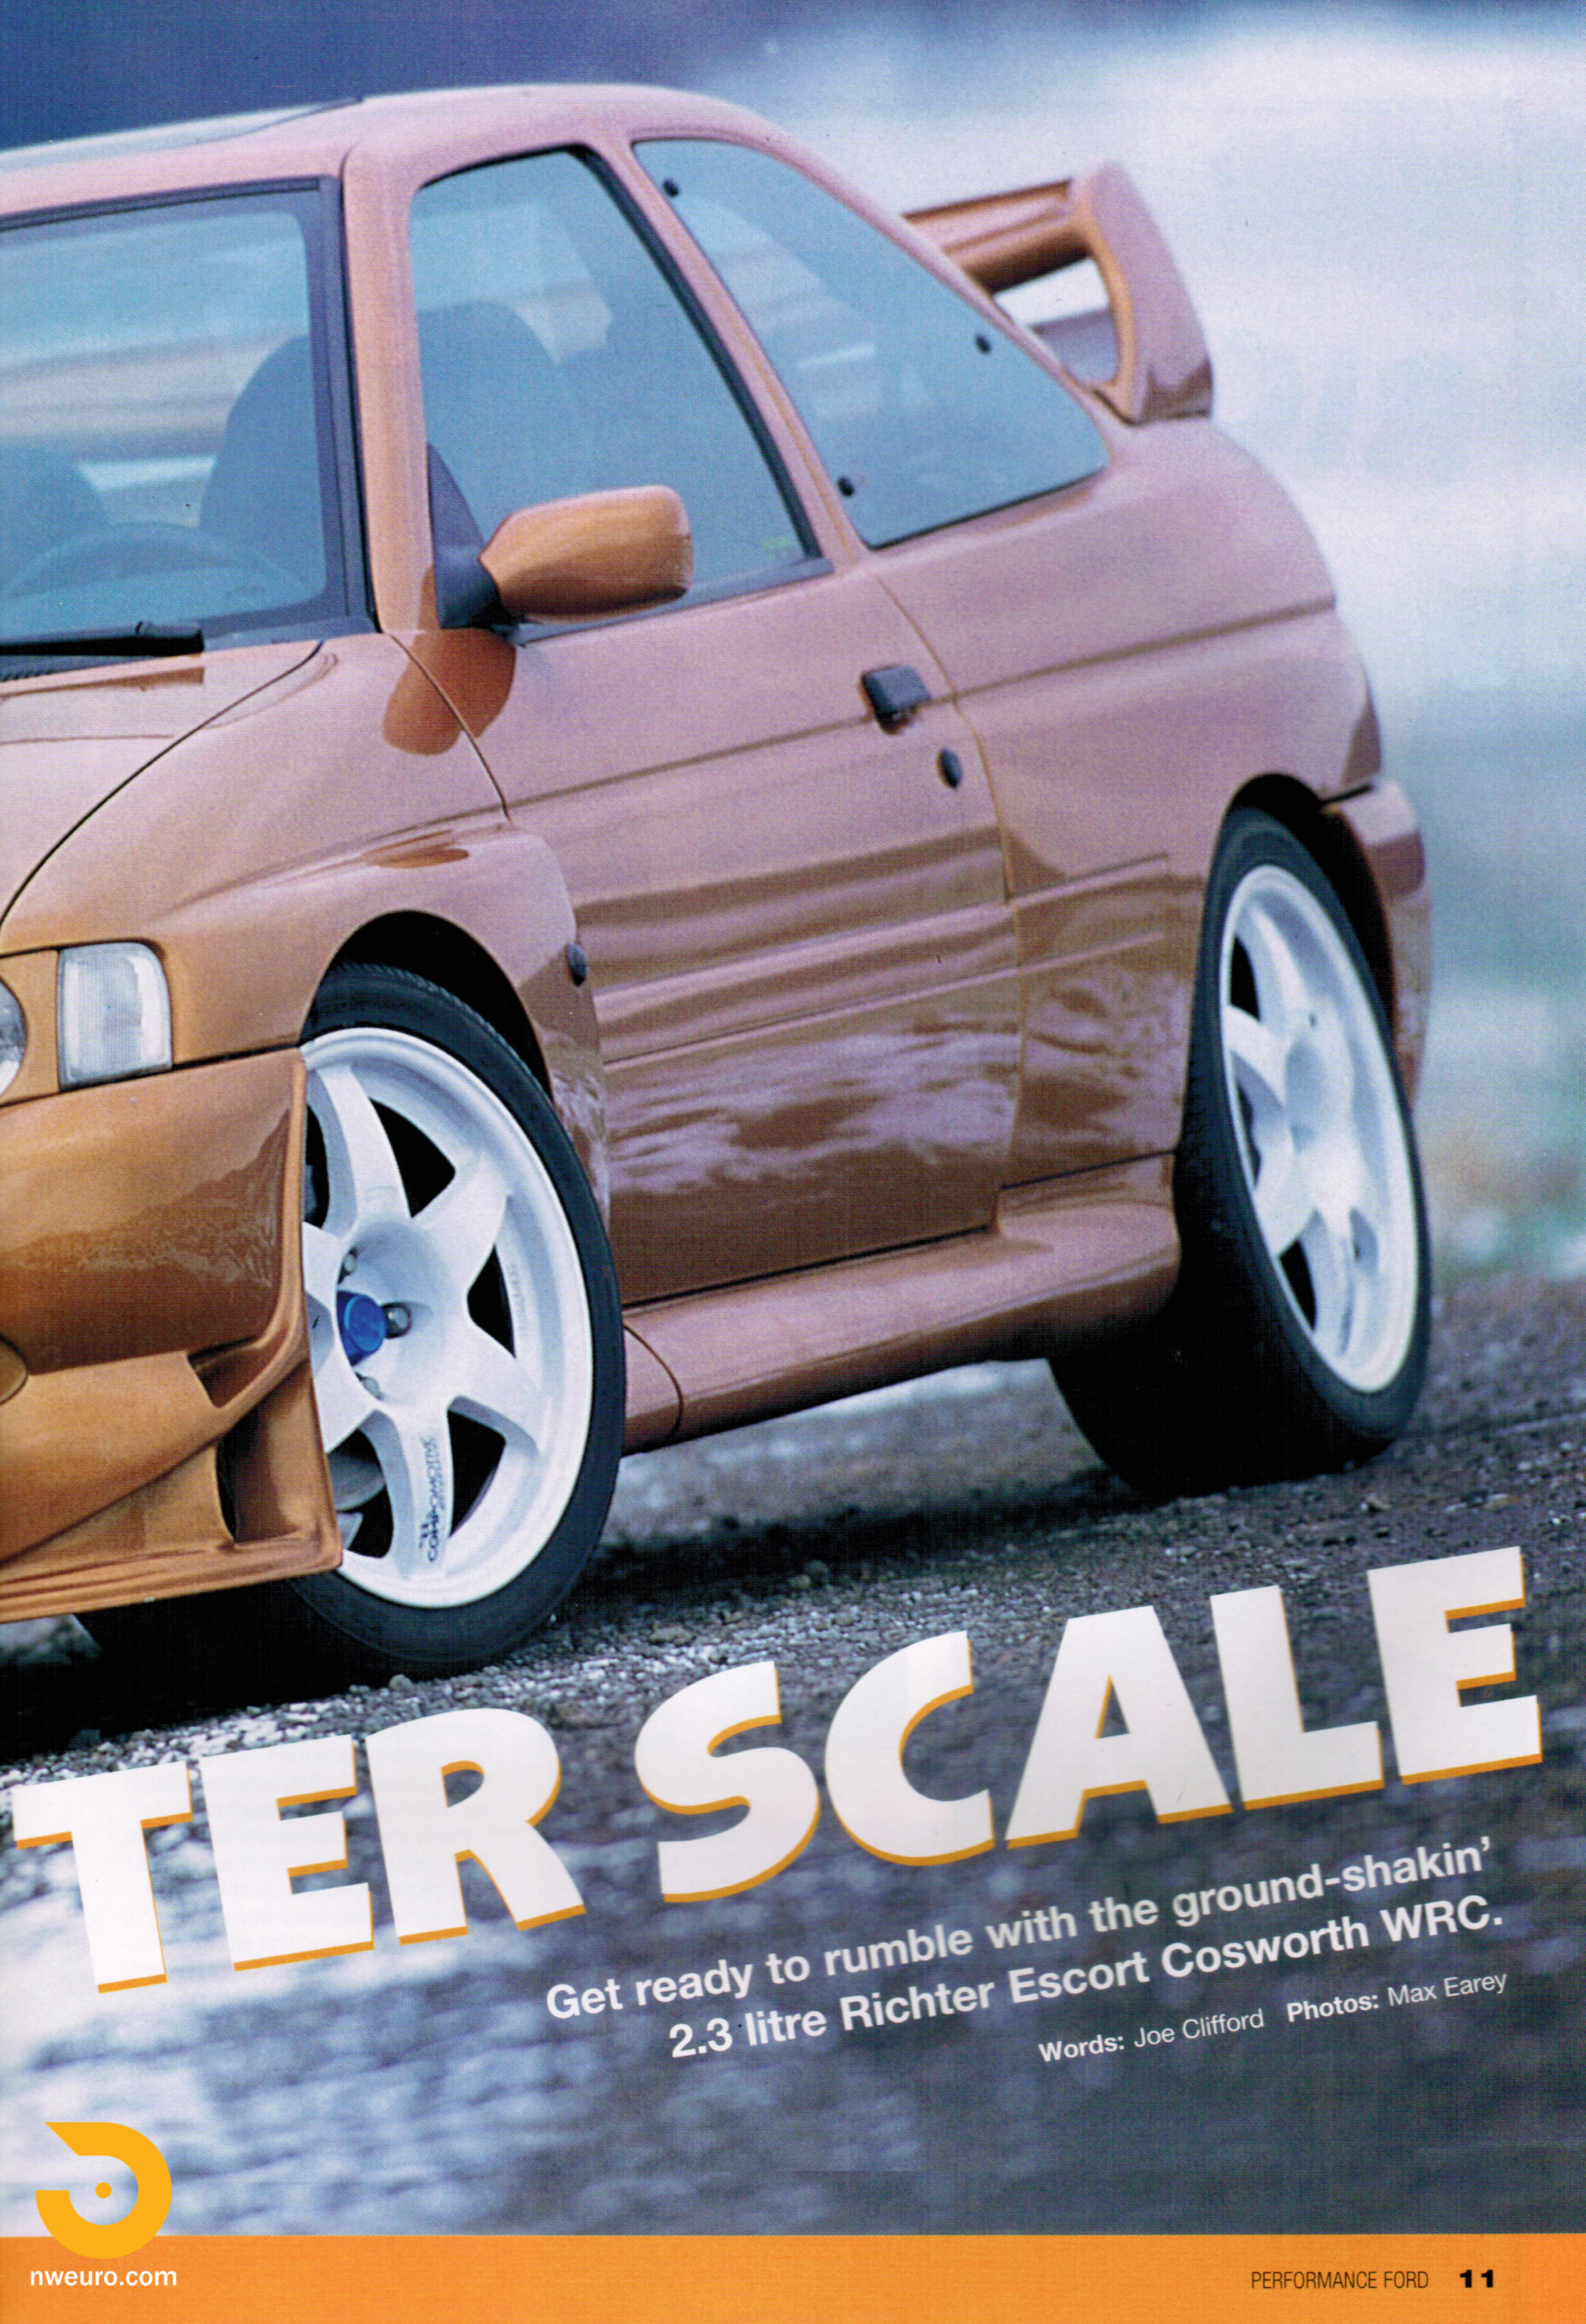 Performance Ford Magazine - Gold Cosworth-3.jpg